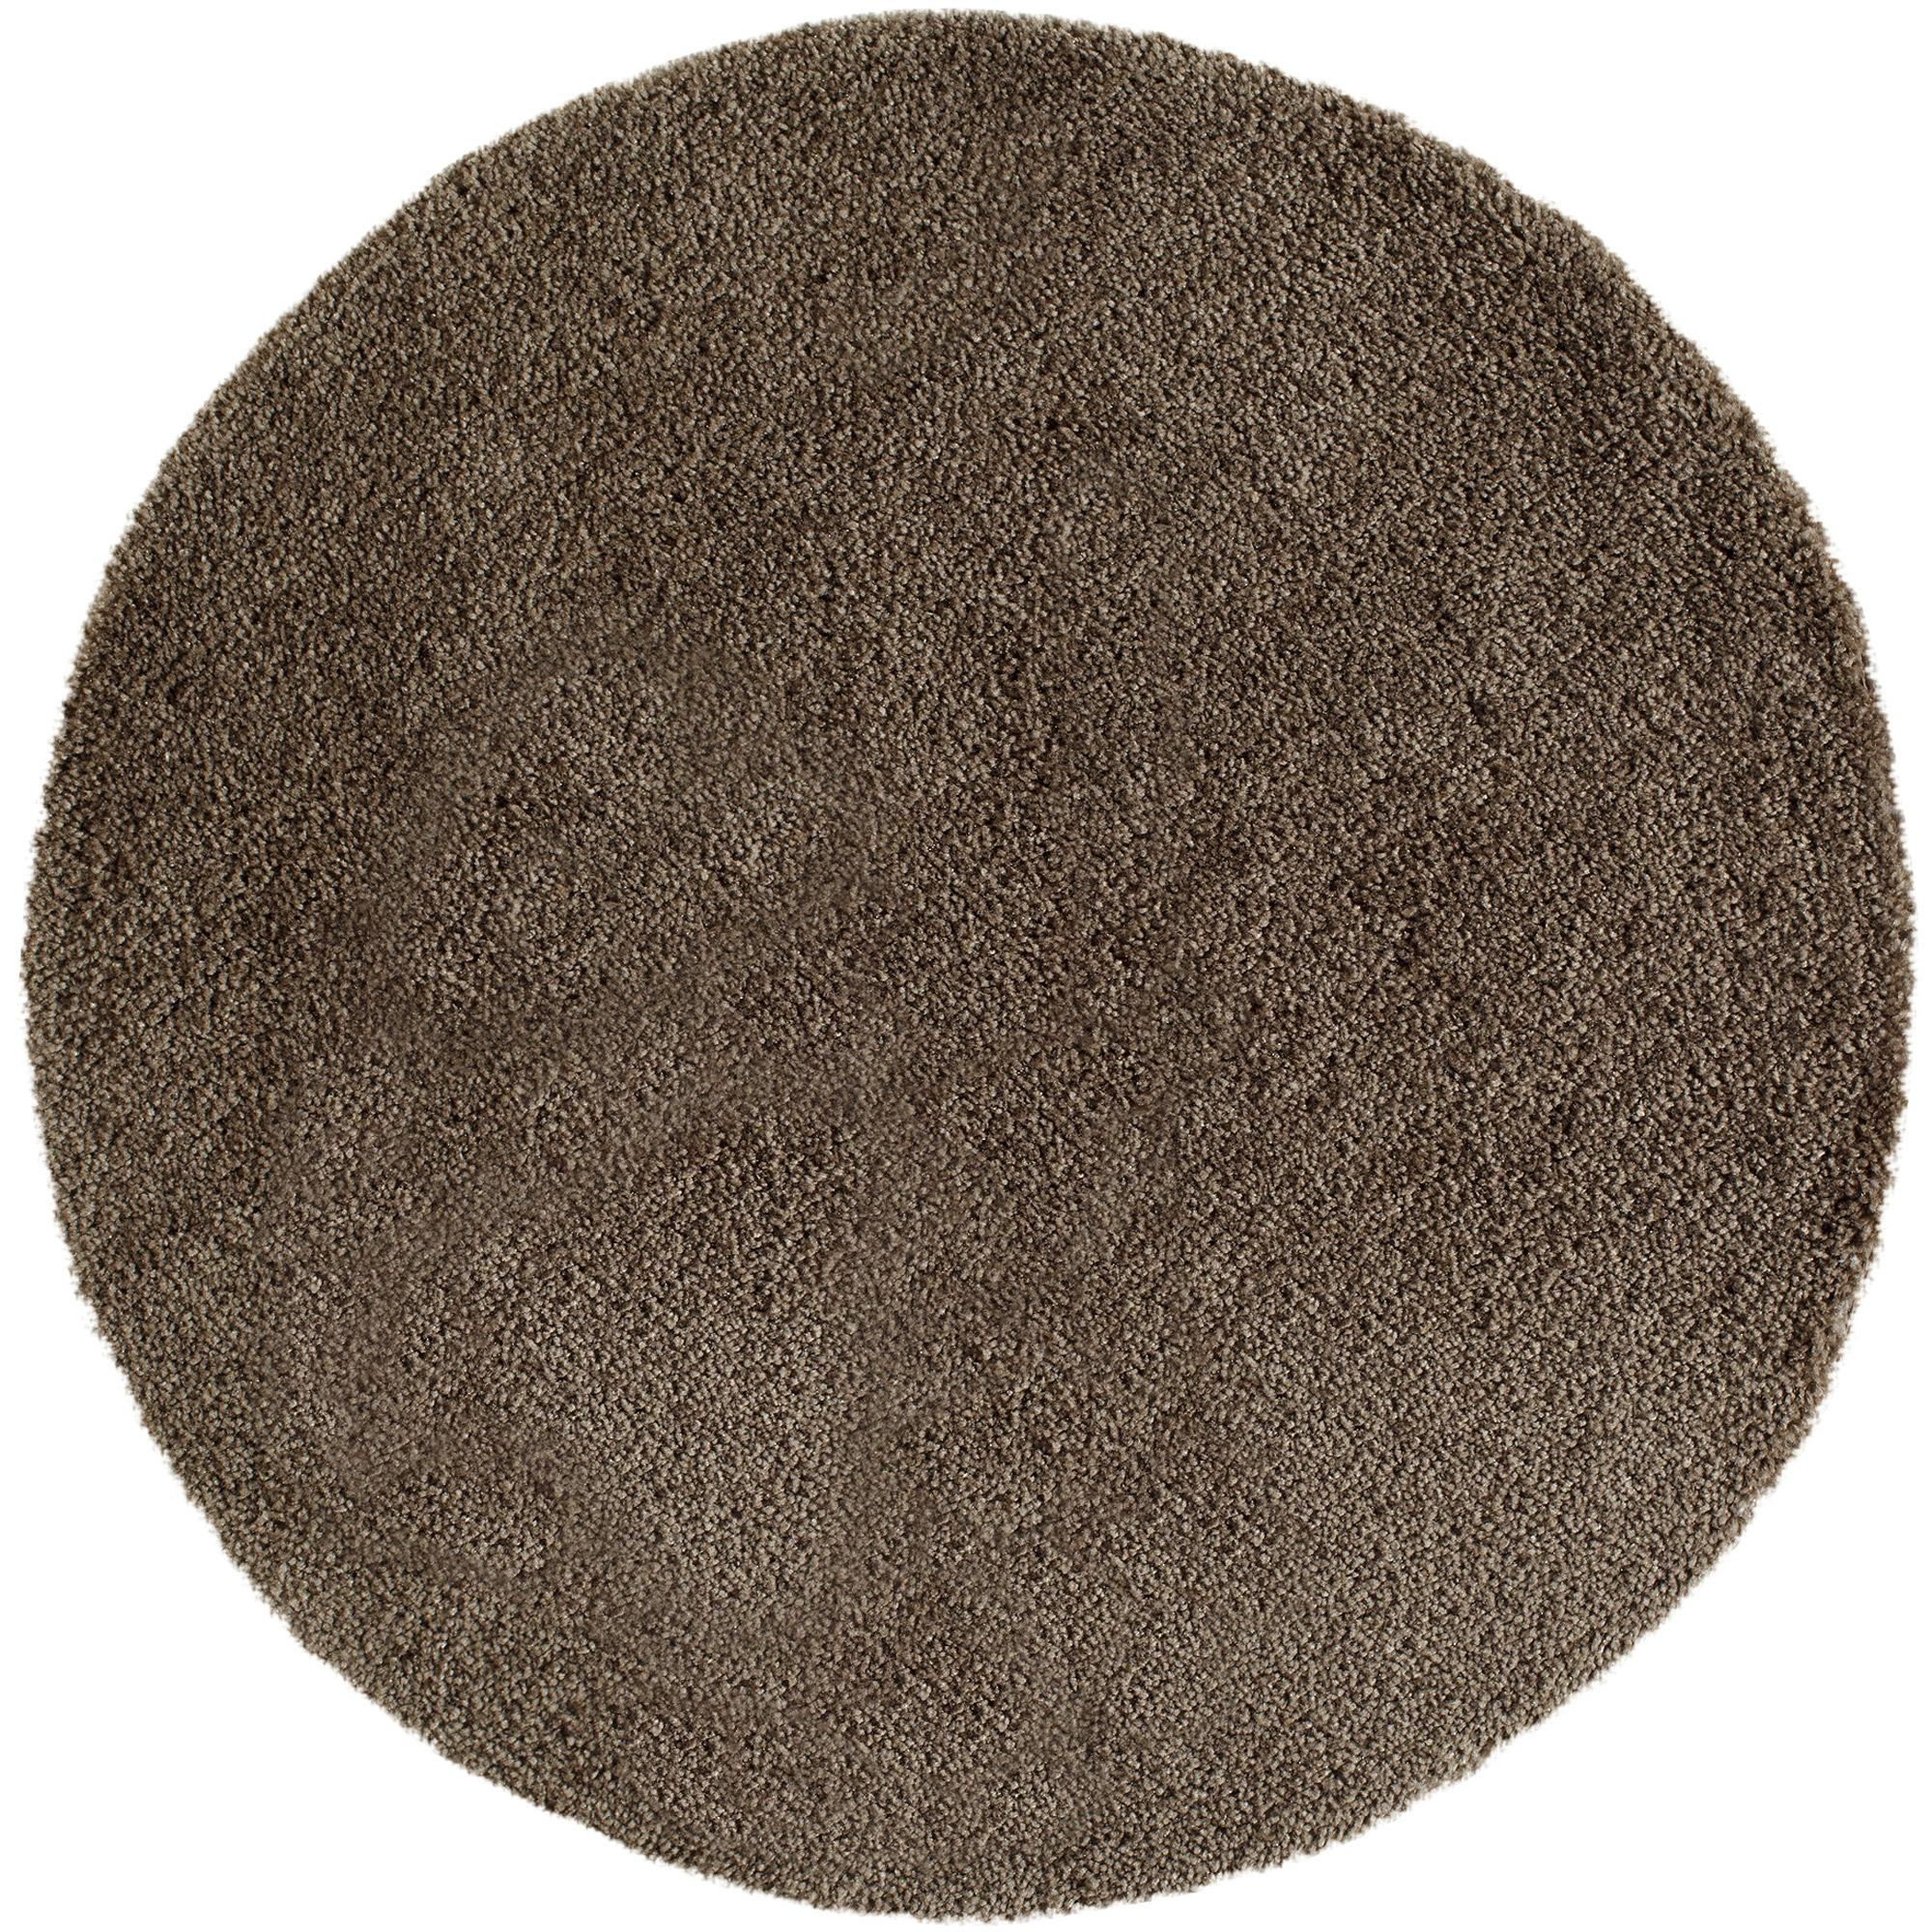 Permalink to Round Rug For Bathroom